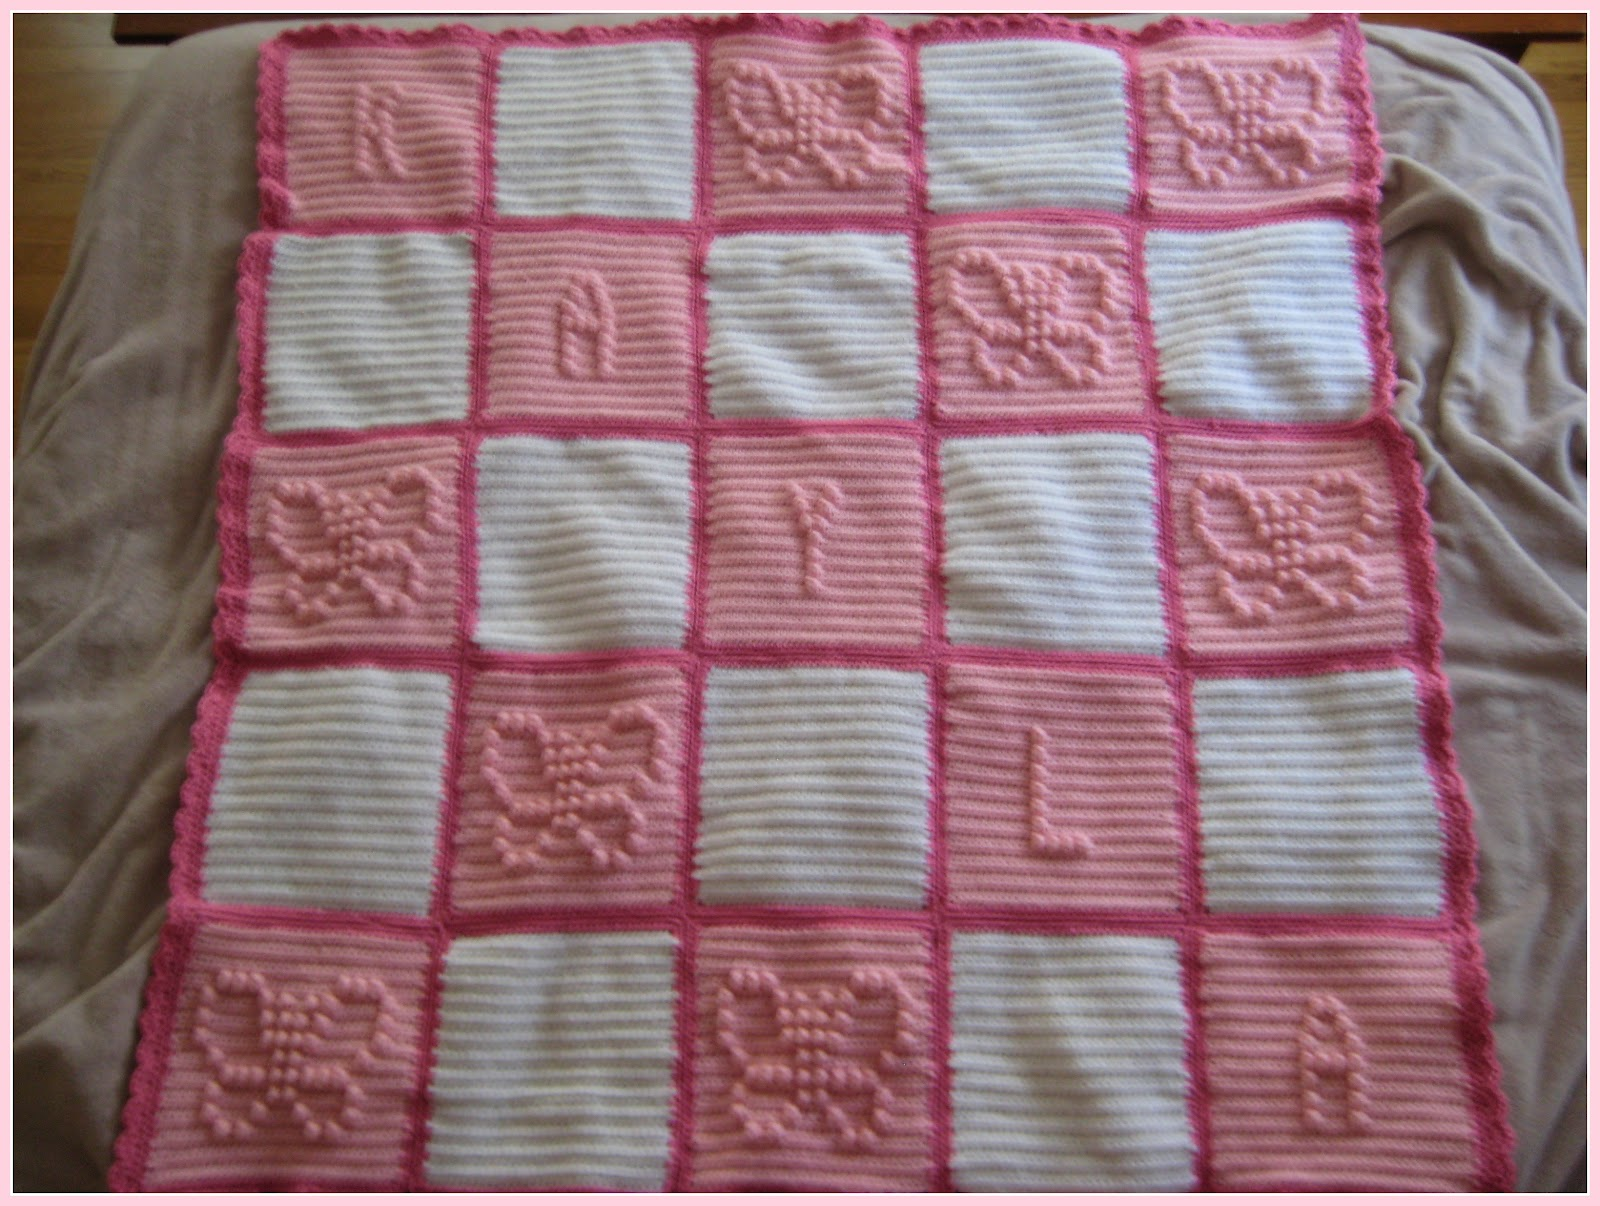 Knitting Pattern For Popcorn Baby Blanket : a blanket 2 keep: crochet show & tell: baby blanket #4